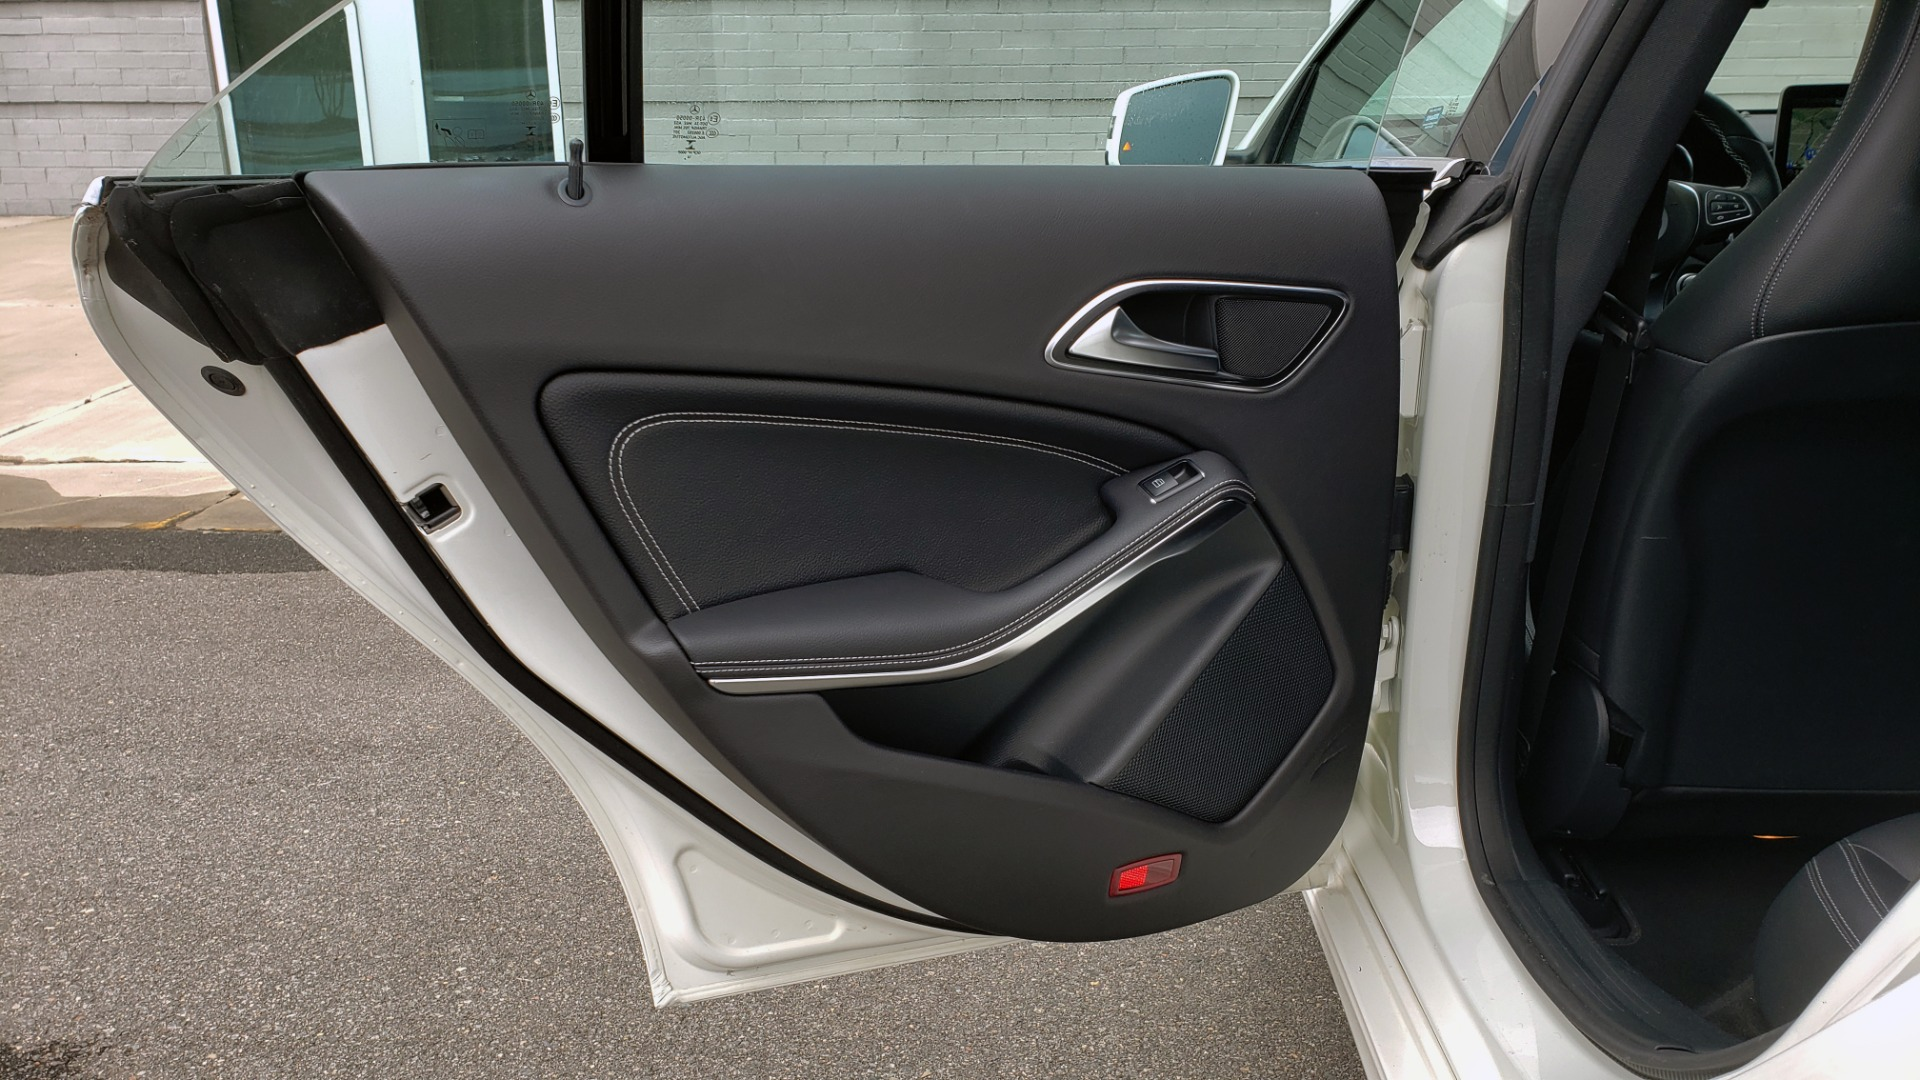 Used 2018 Mercedes-Benz CLA 250 PREMIUM / NAV / PANO-ROOF / APPLE CARPLAY / REARVIEW for sale $23,995 at Formula Imports in Charlotte NC 28227 59